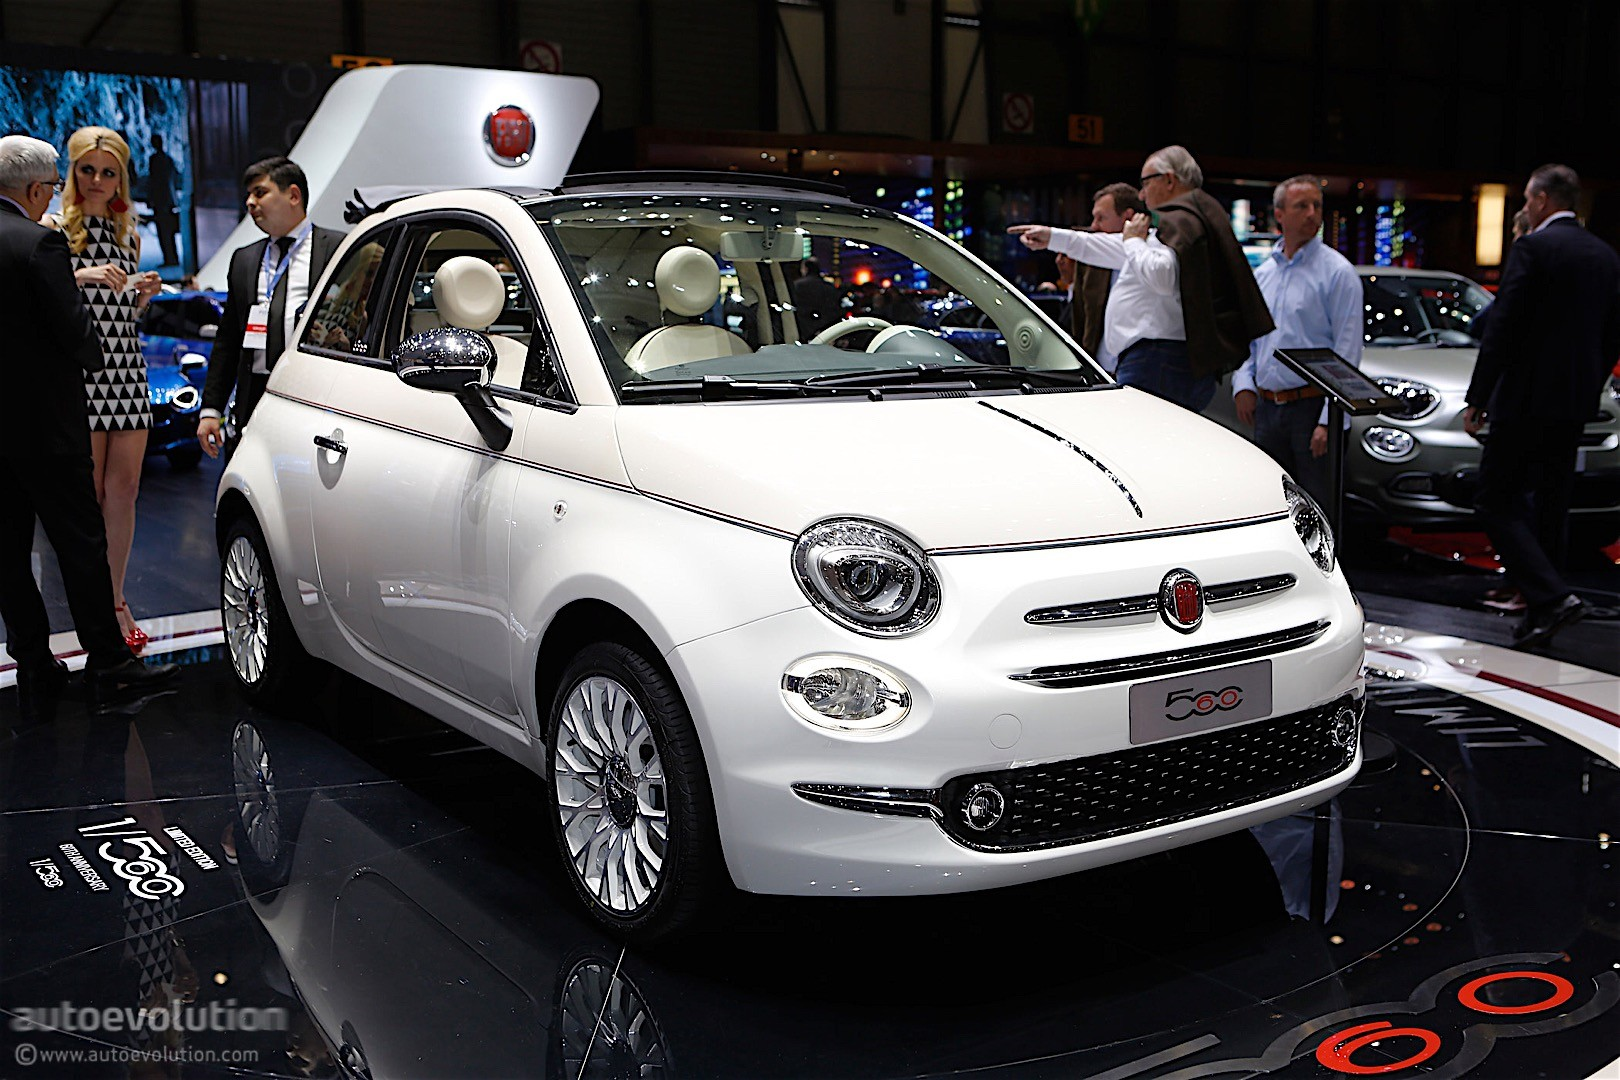 new fiat 500 could get 48v hybrid system won 39 t feature diesel engine autoevolution. Black Bedroom Furniture Sets. Home Design Ideas